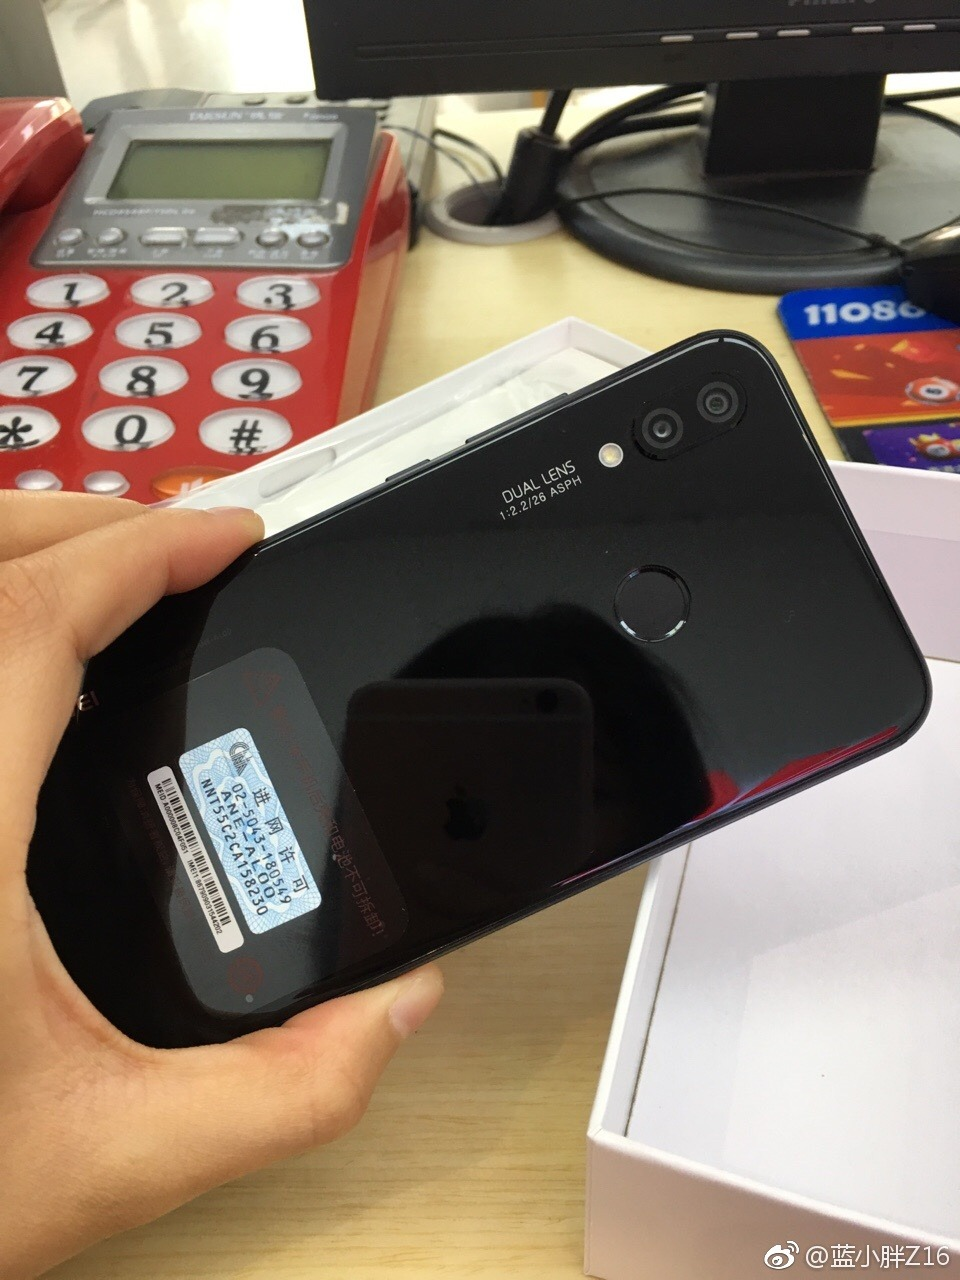 Huawei P20 Lite in midnight black shows up in hands-on images 4